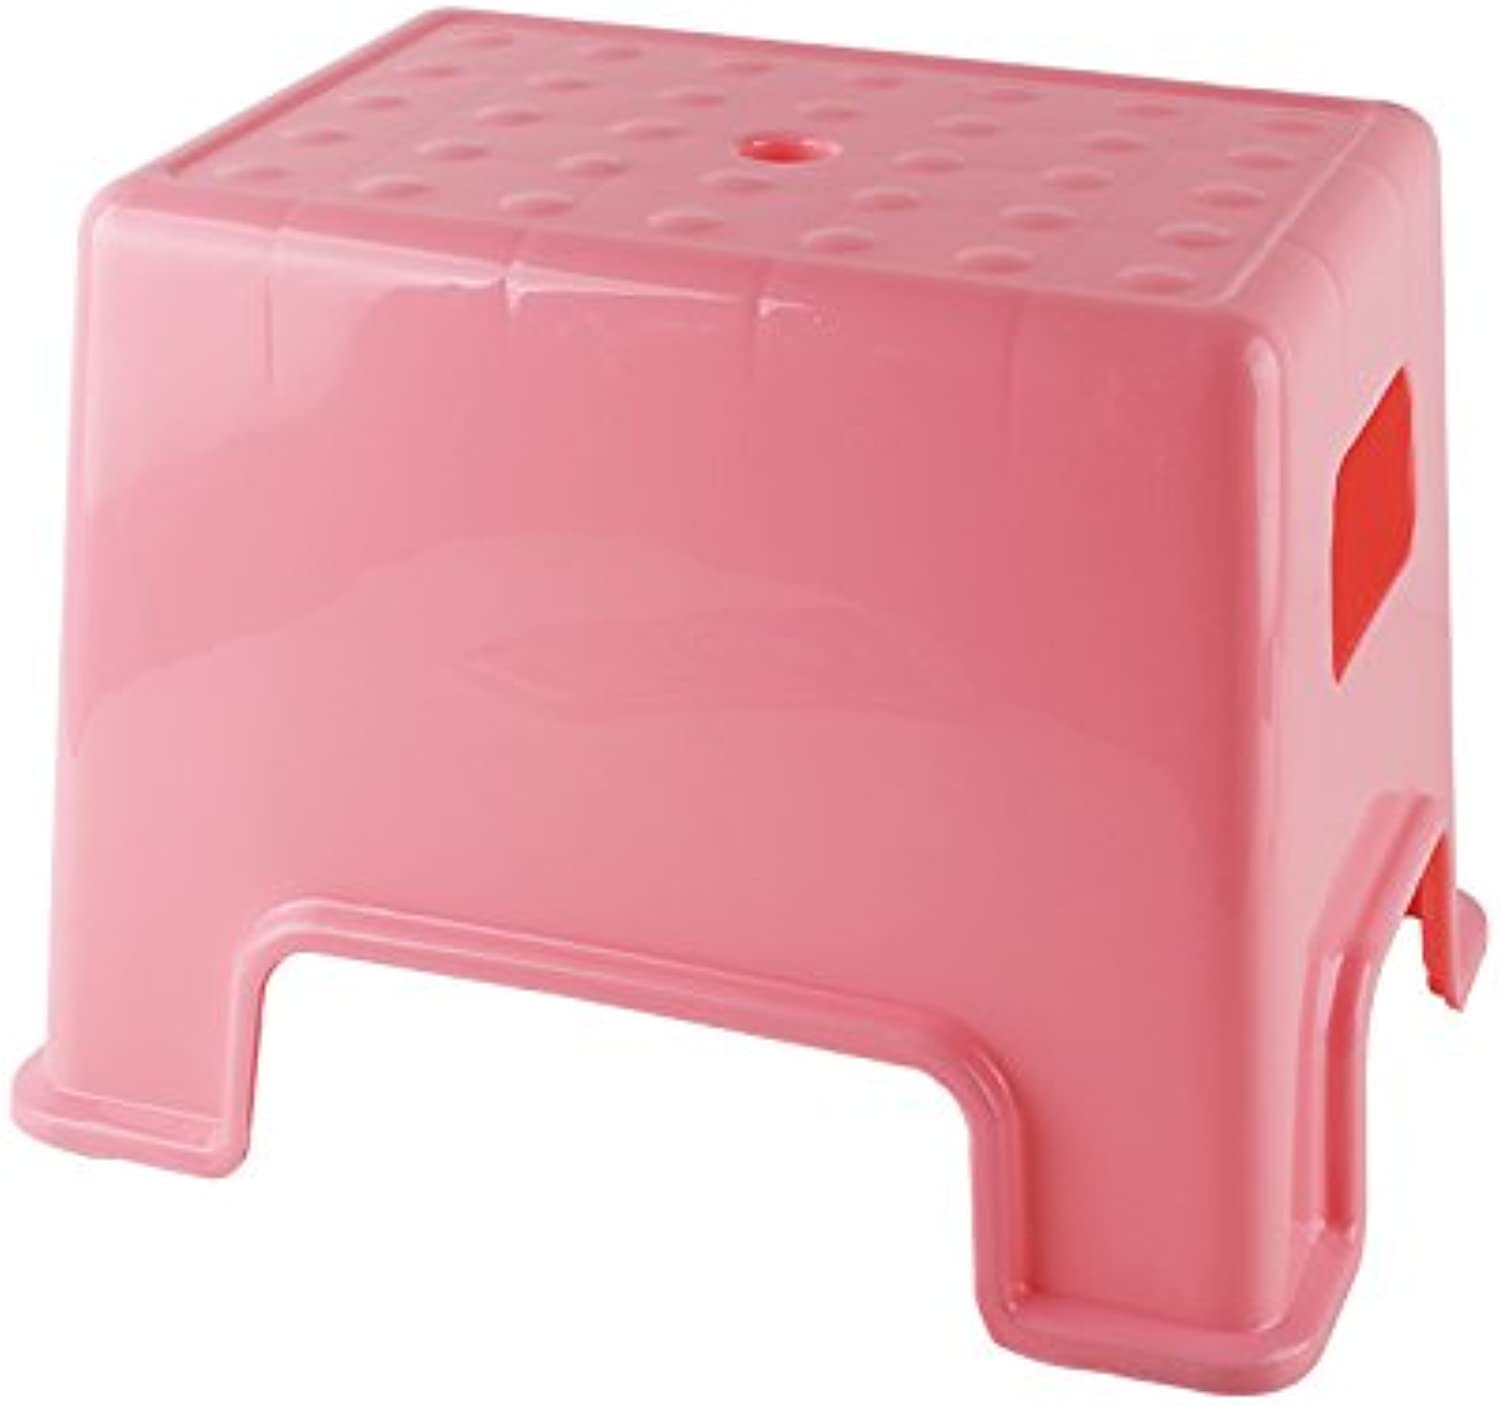 Dana Carrie A plastic stool home thick adult bathroom square bench benches thick low stool in other shoe bench 4PCS, pink ,3431.539CM